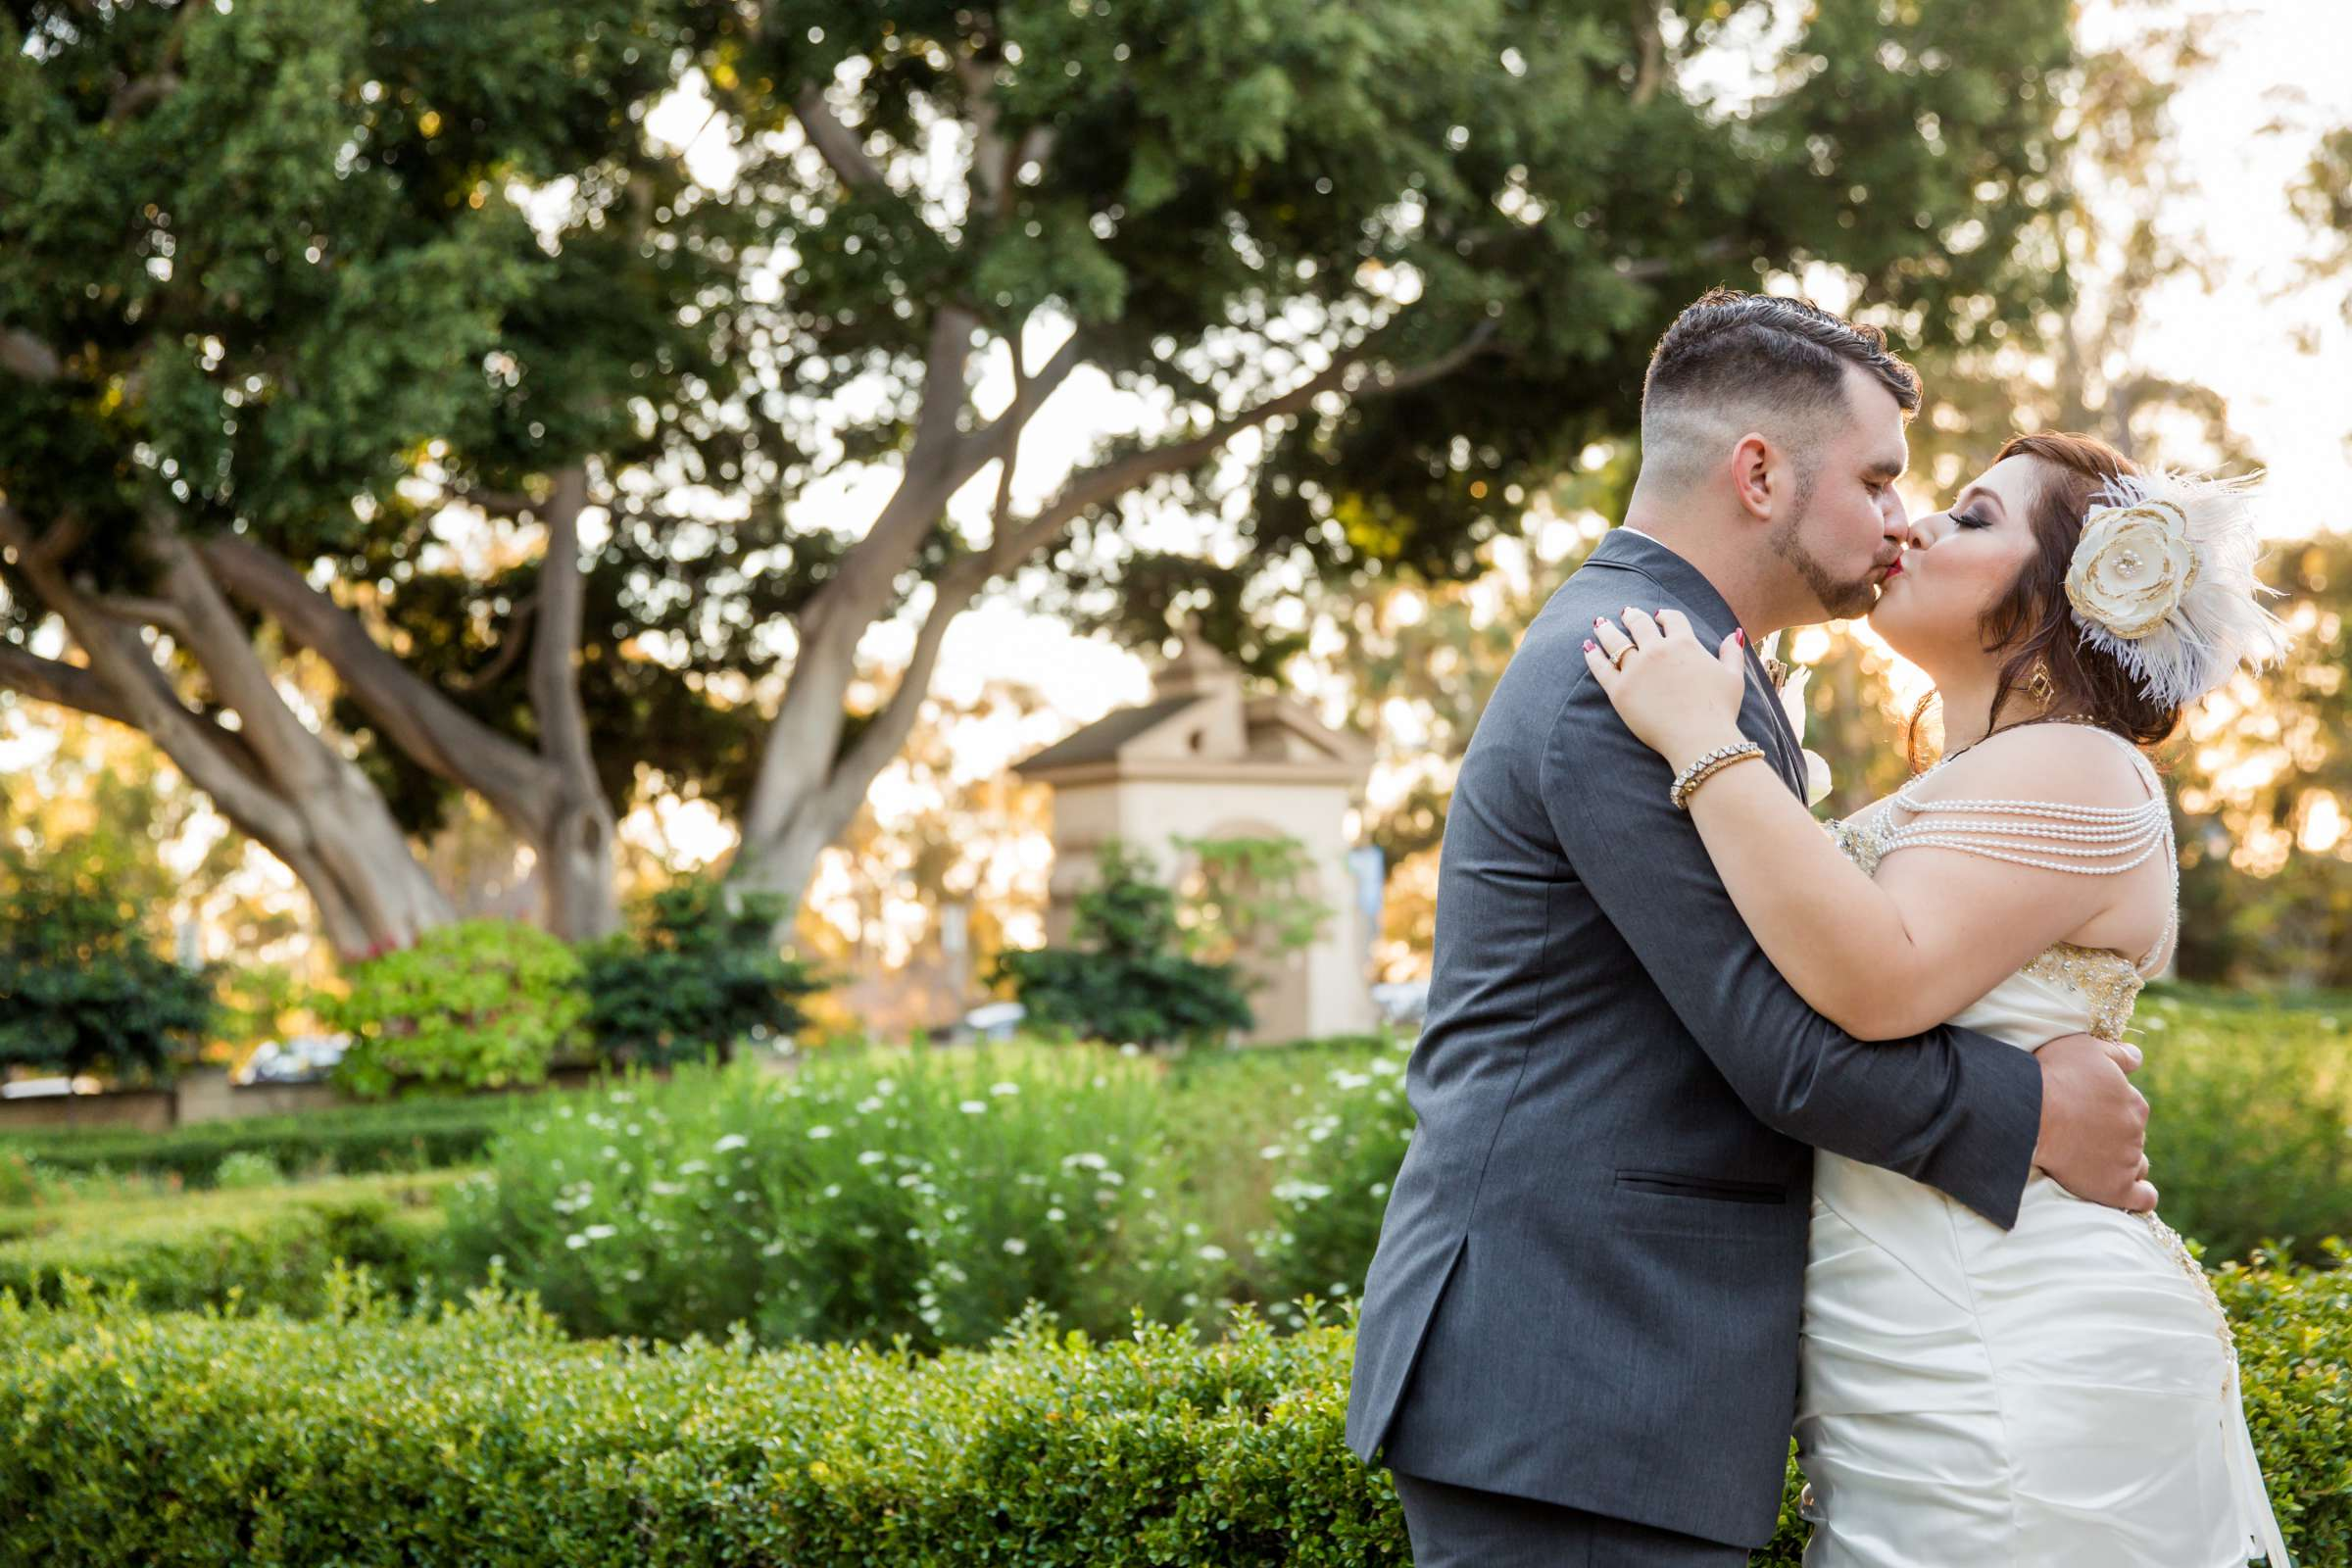 The Prado Wedding coordinated by Breezy Day Weddings, Aalis and Michael Wedding Photo #81 by True Photography